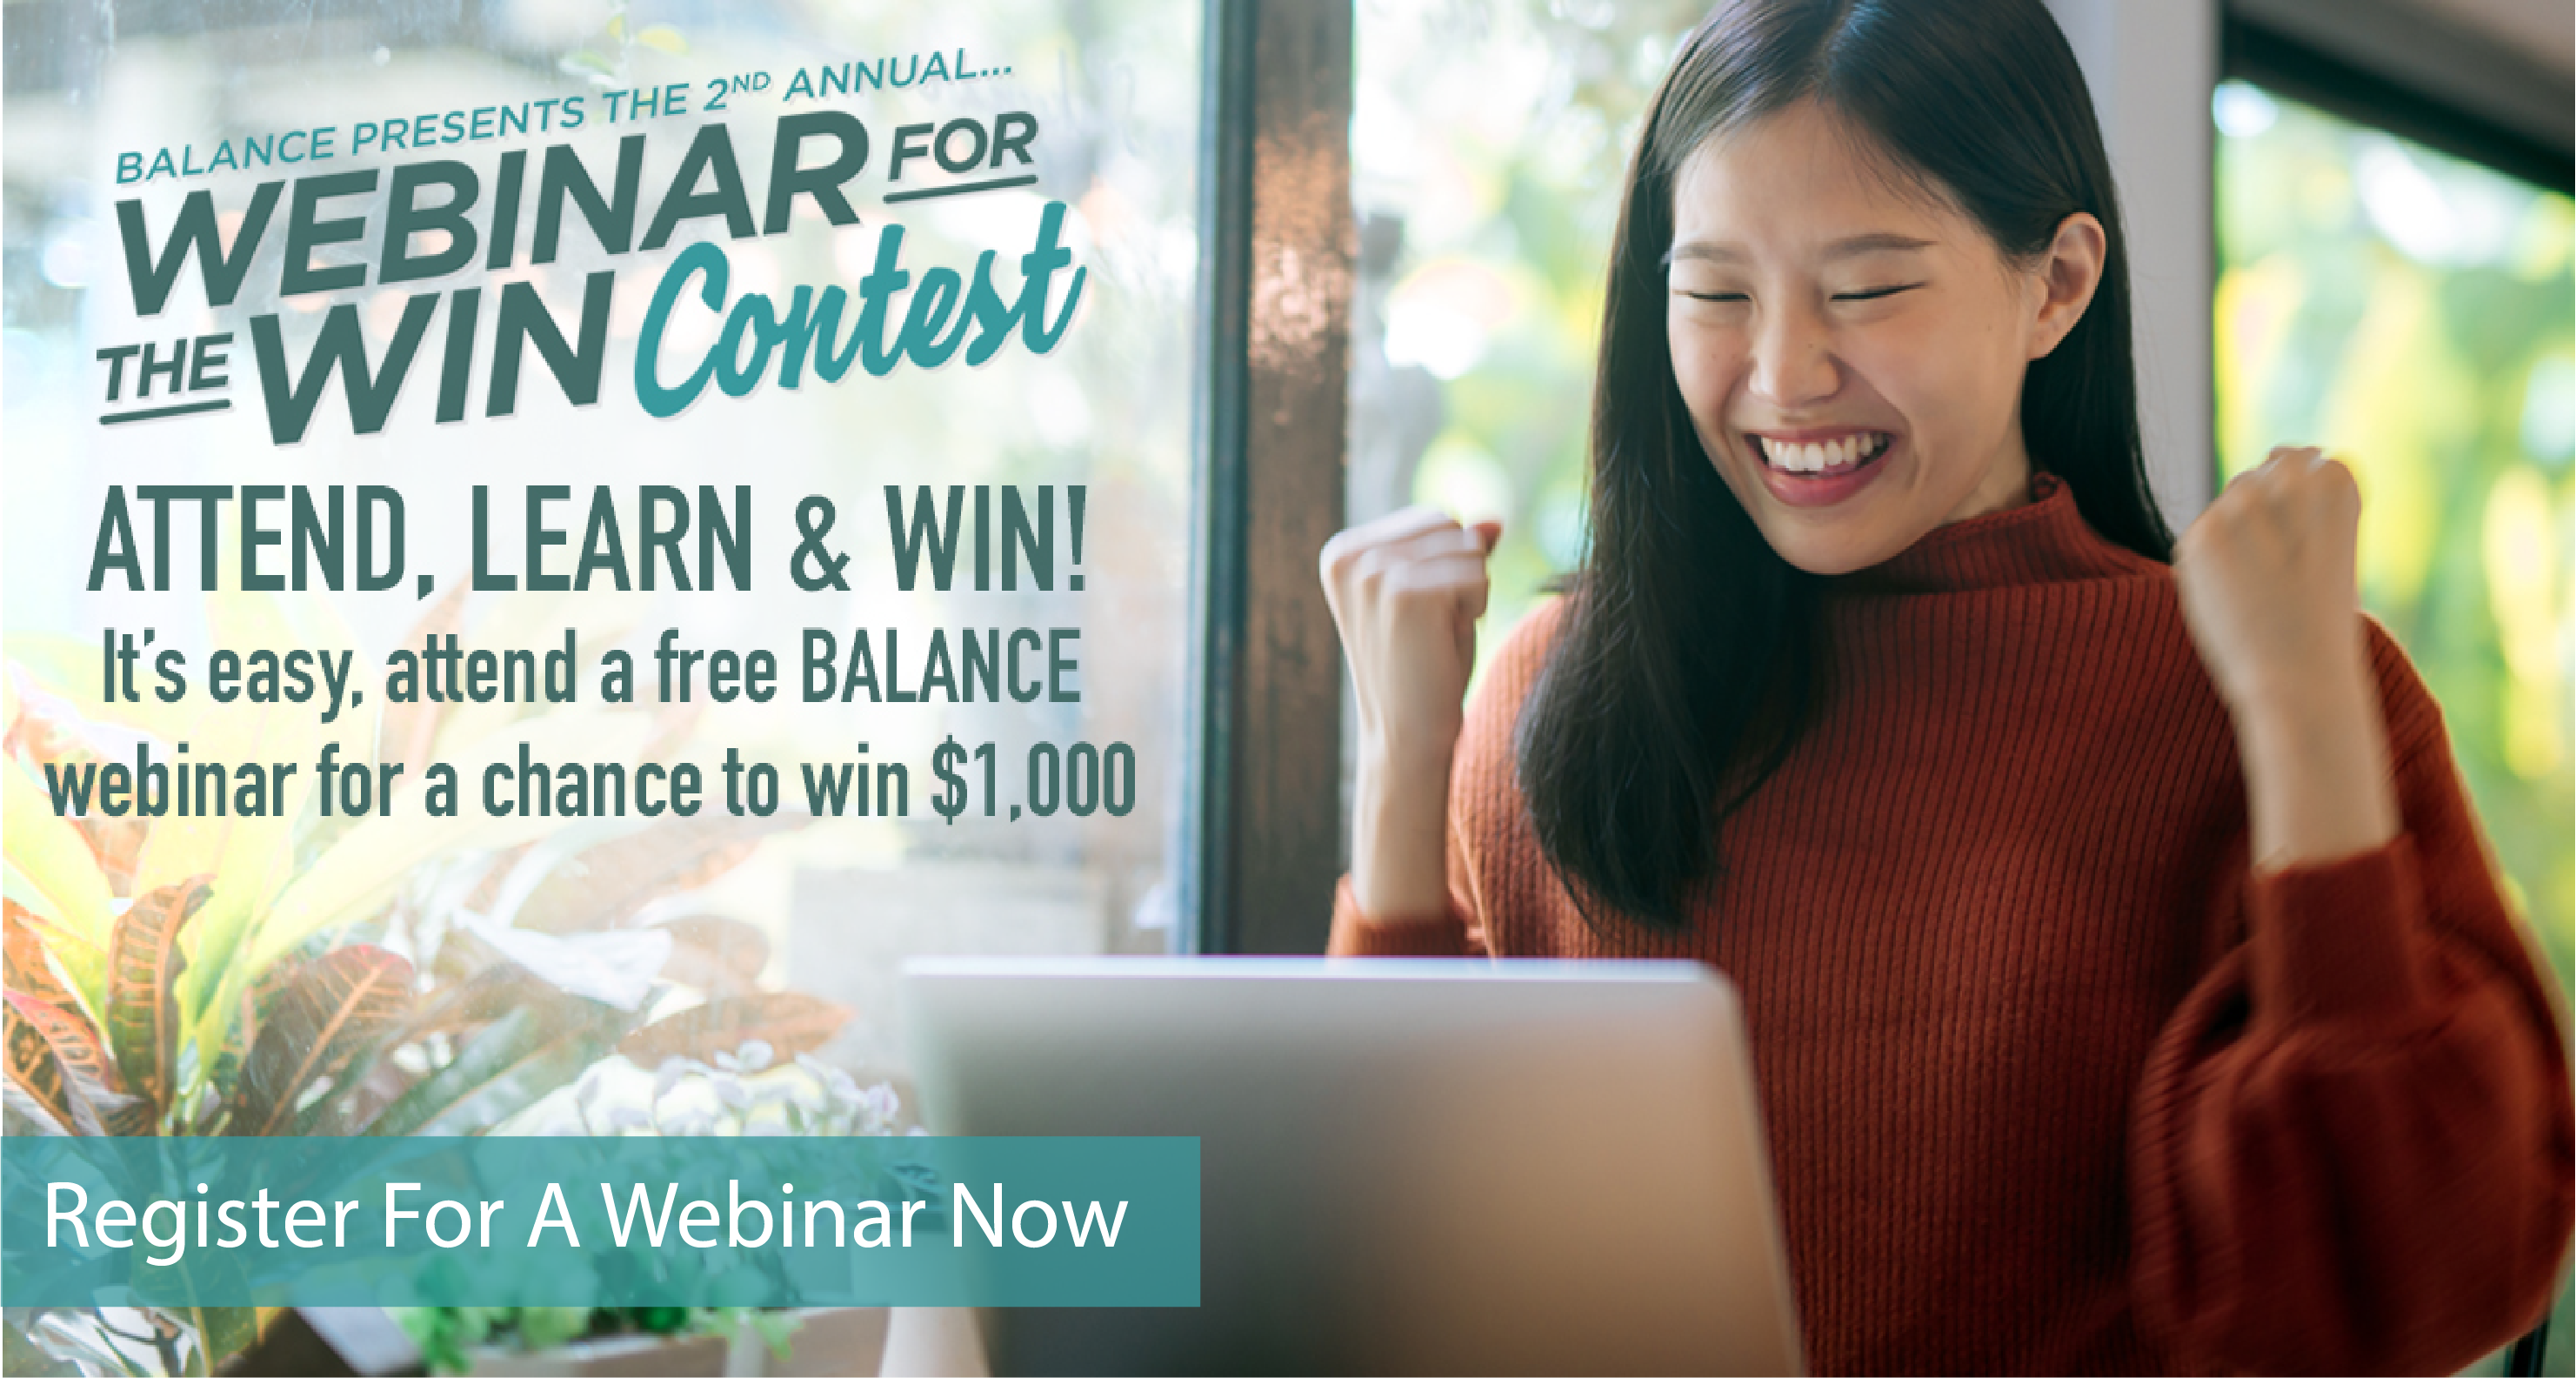 Attend a free BALANCE webinar for a chance to win $1000!